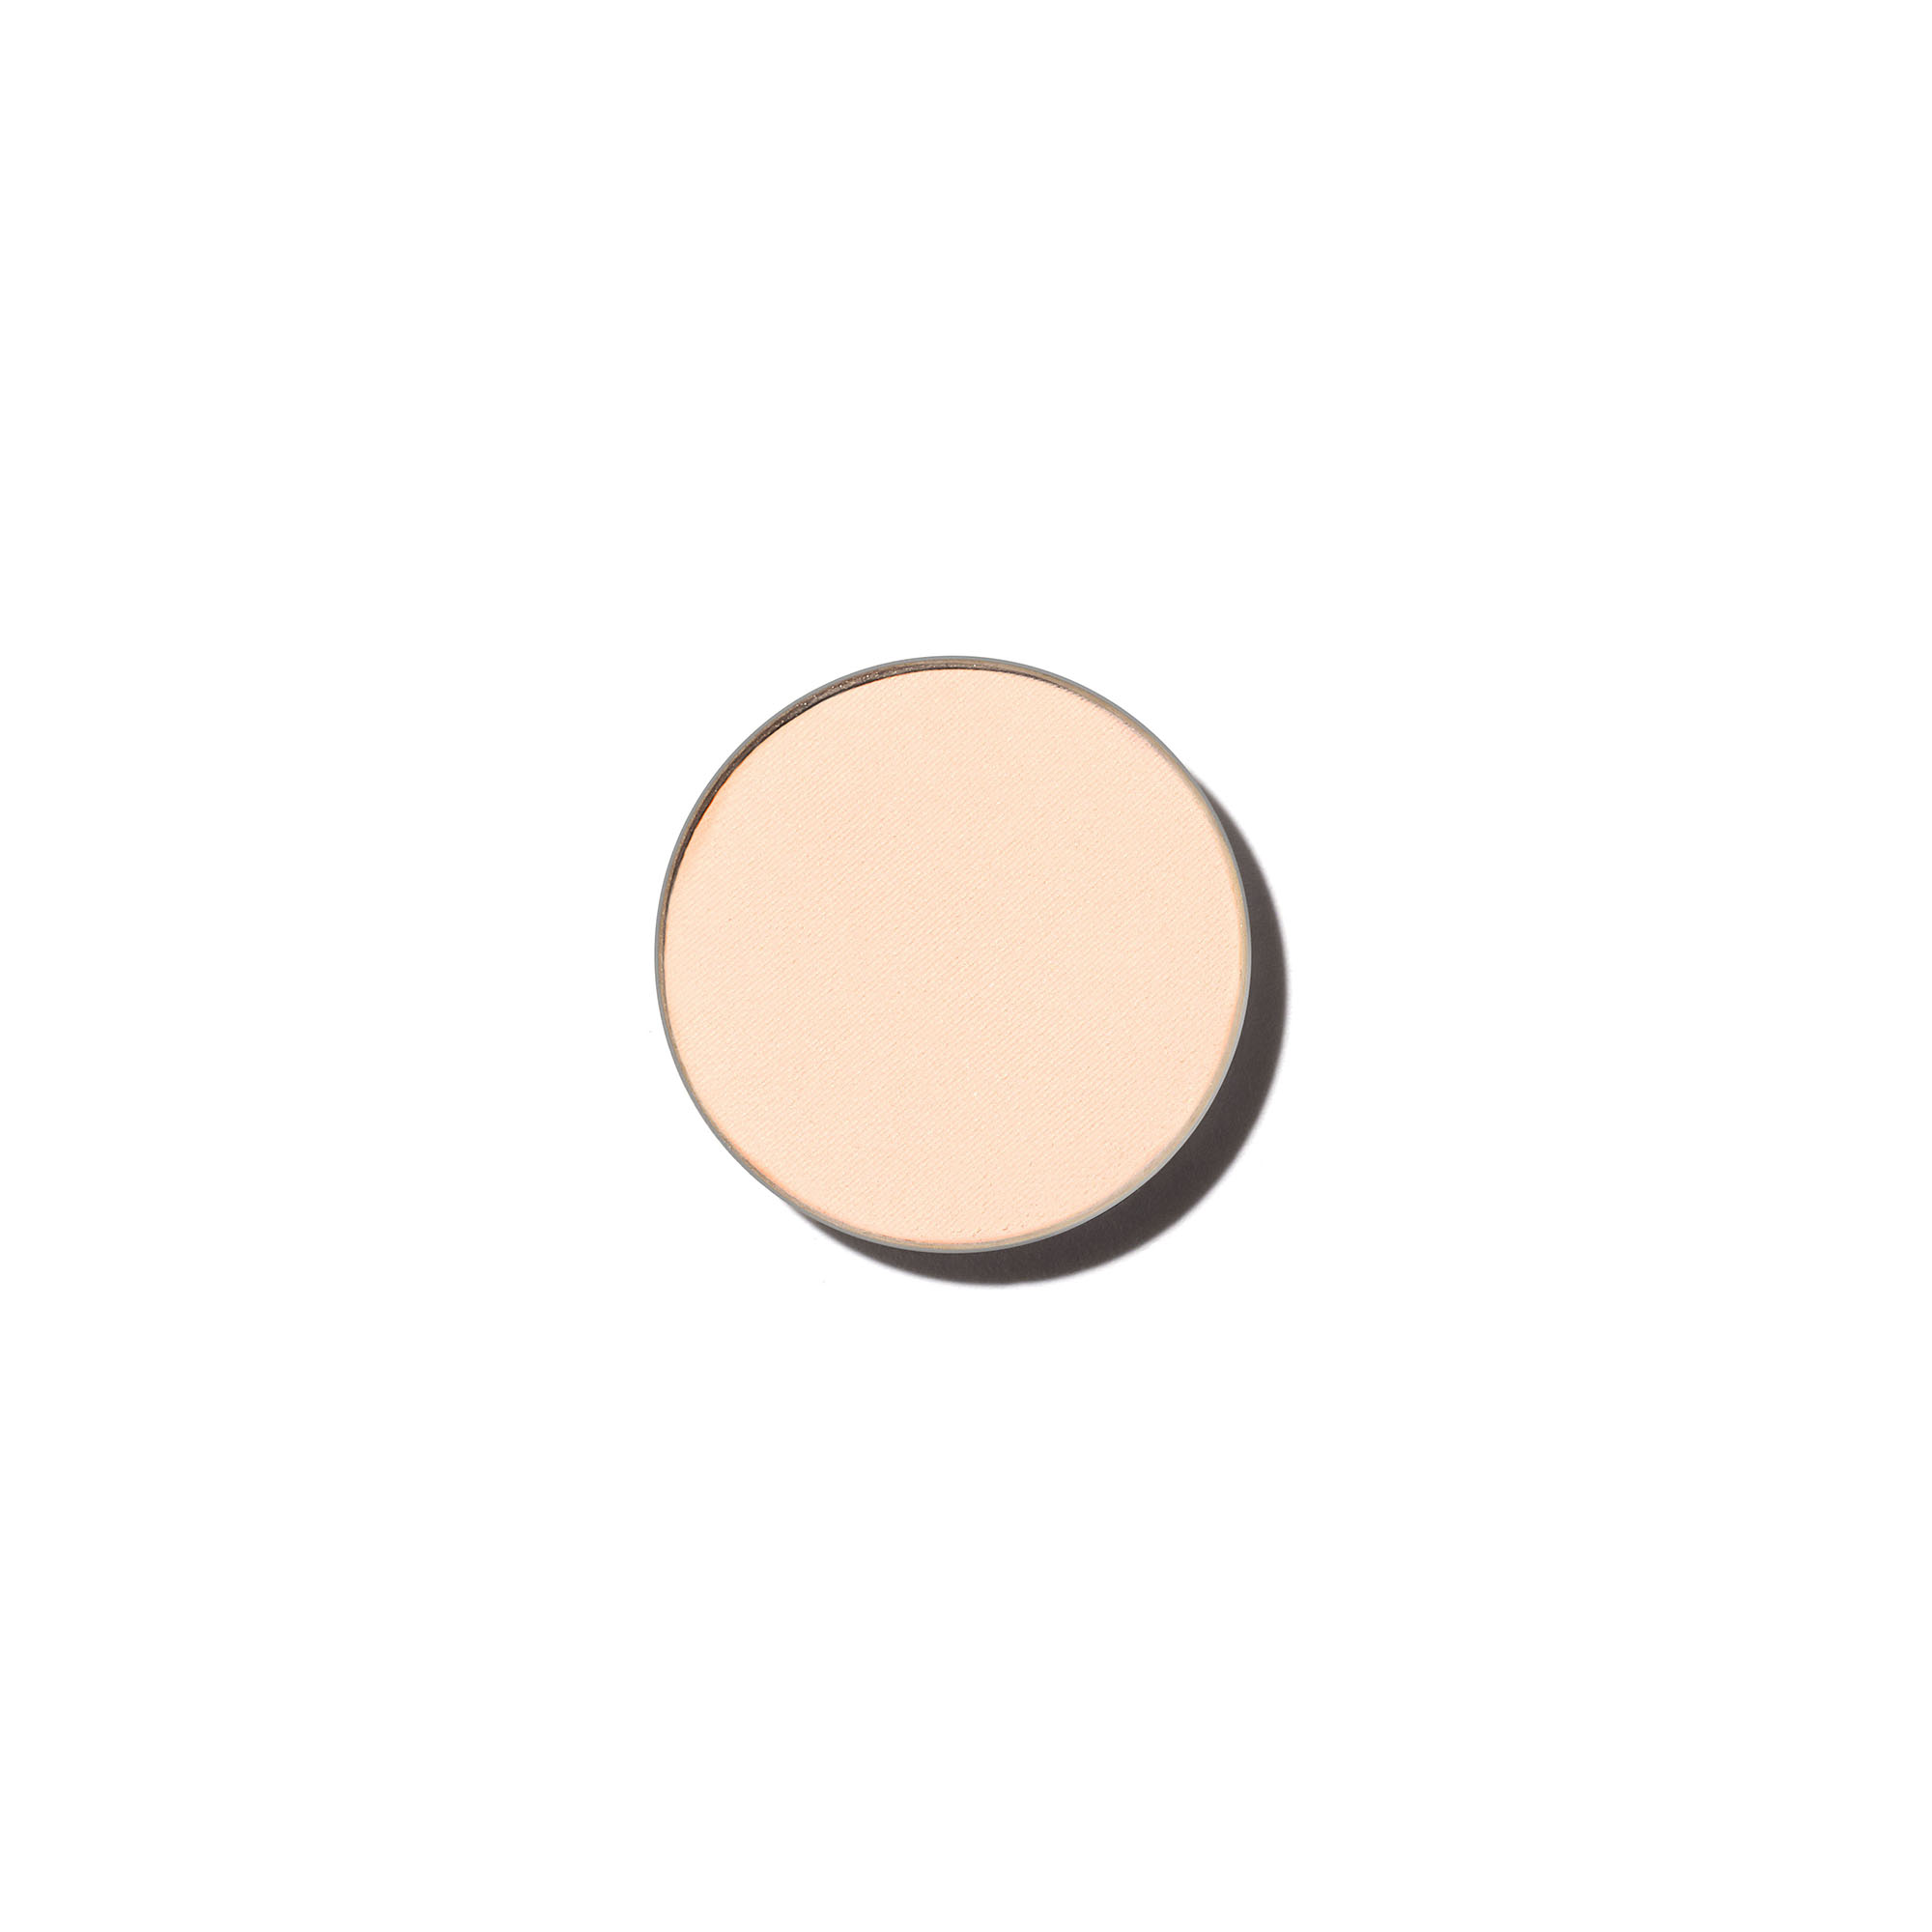 Build A Palette Custom Eyeshadow Anastasia Beverly Hills Fixy Ultimate Make Up Cake Peach Beige Eye Shadow Singles